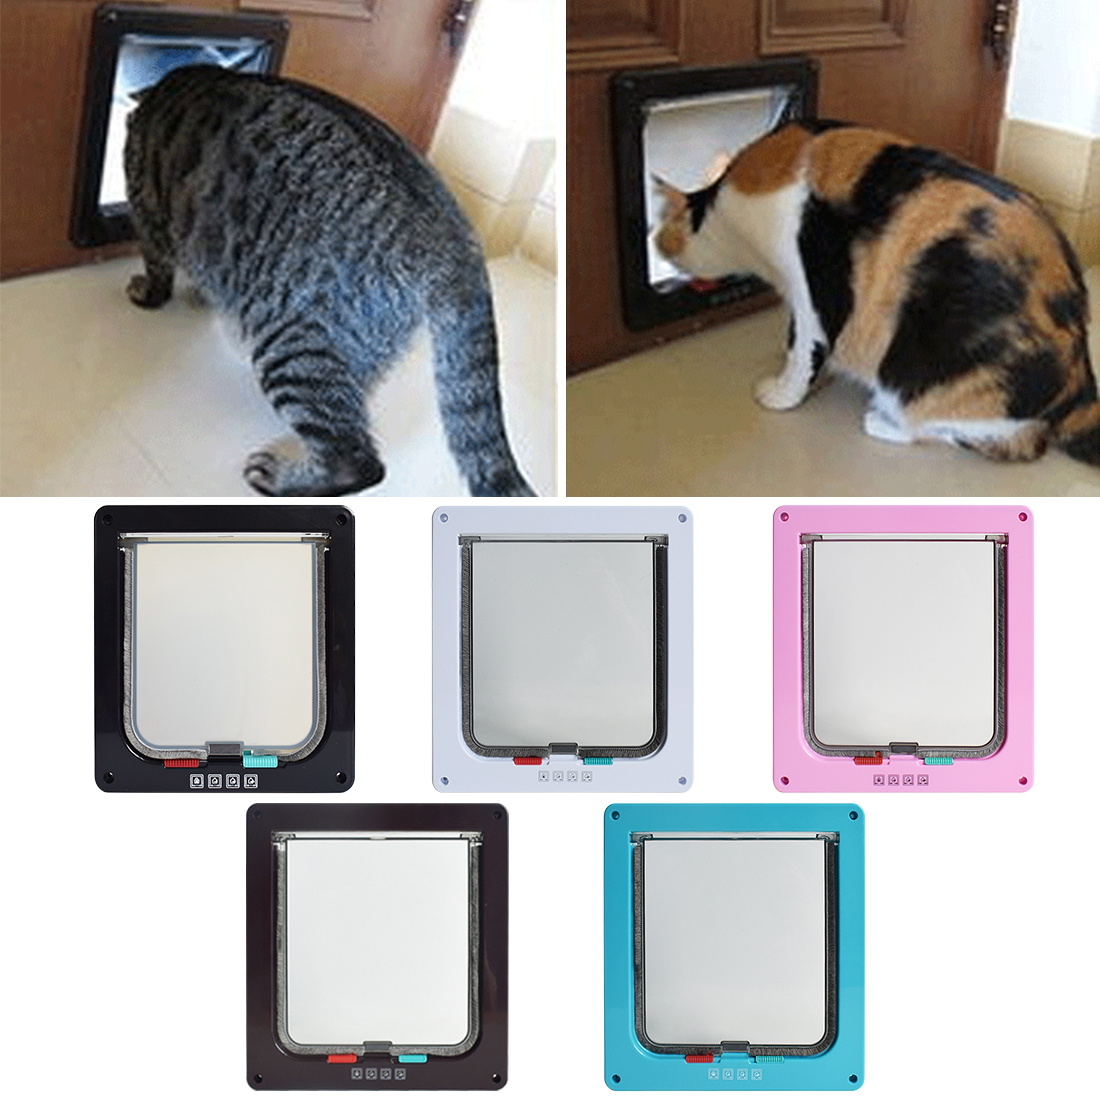 1pc Dog Cat Door Plastic White Safe Pet Door For Large Medium Dog Freely In And Out Home Gate Animal Pet Cat Dog Door